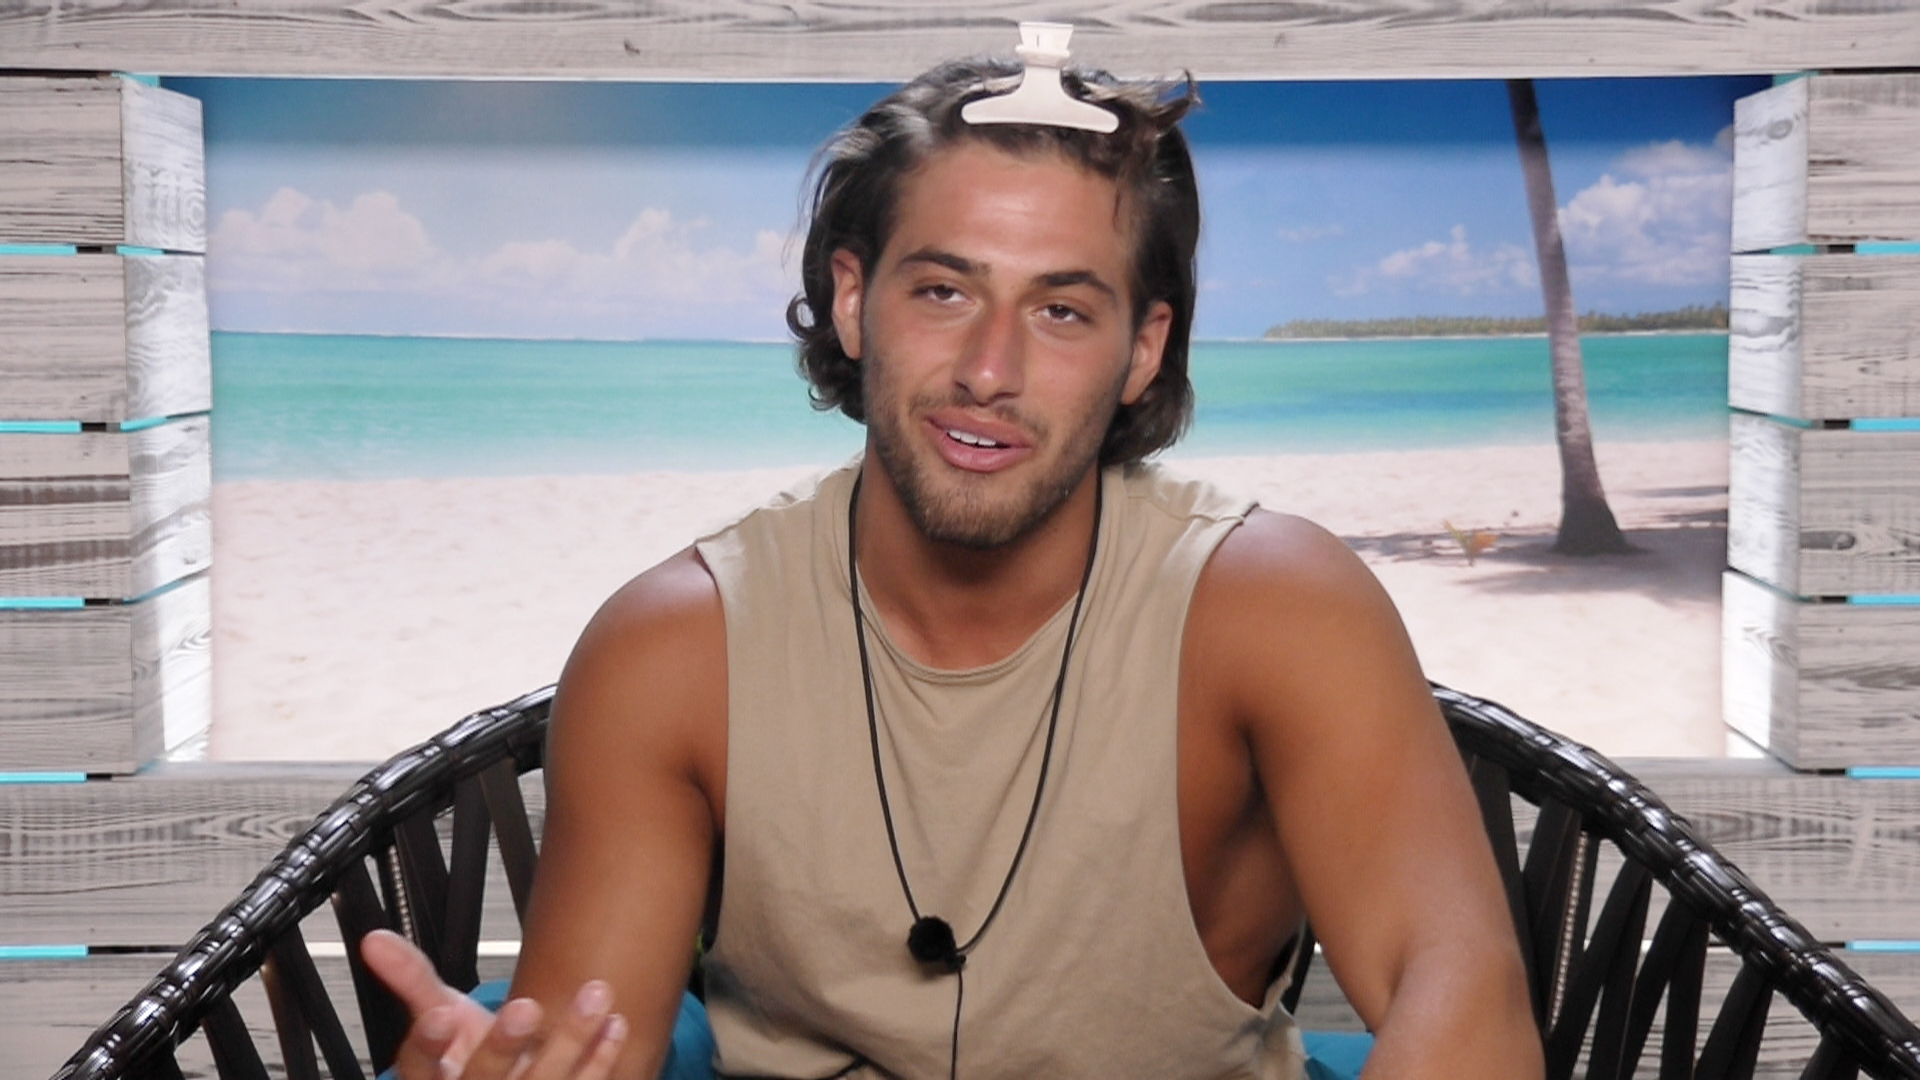 Love Island bosses planning to spice things up with gay and lesbian contestants